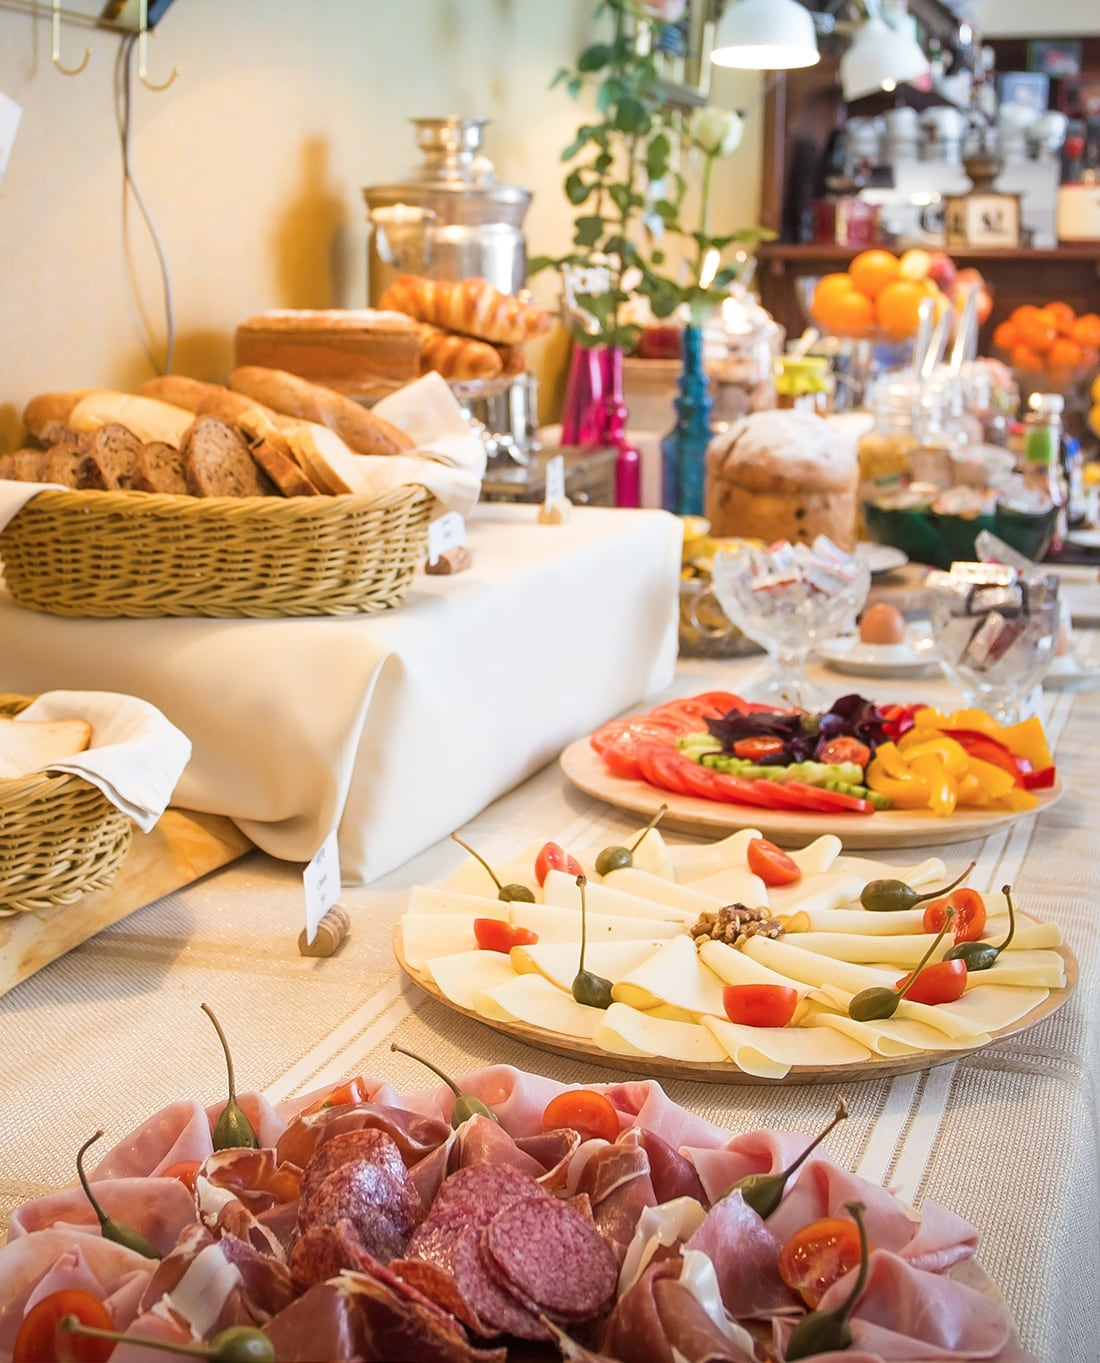 Bojnice-Best-Breakfast-Hotel-Bojnicky-Vinny-Dom-Boutique-Hotel-side-Image